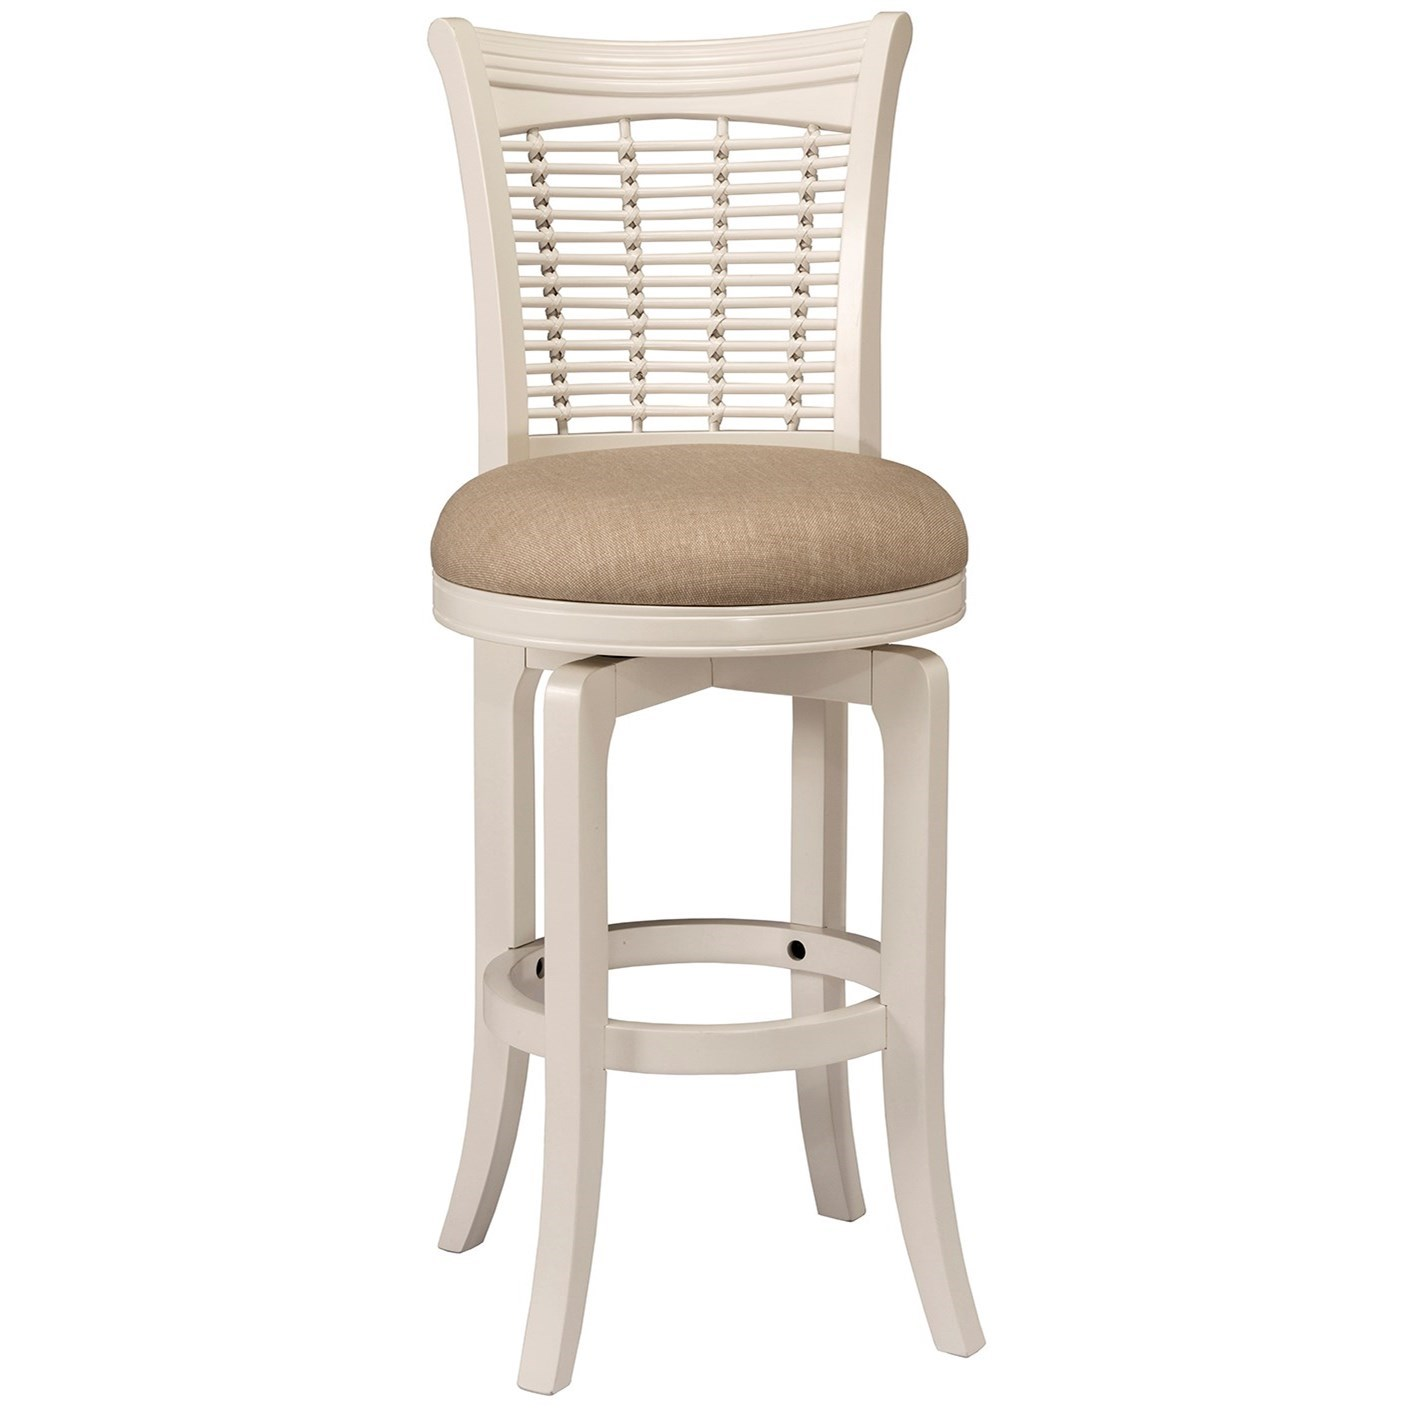 Bayberry White Swivel Counter Stool by Hillsdale at SuperStore